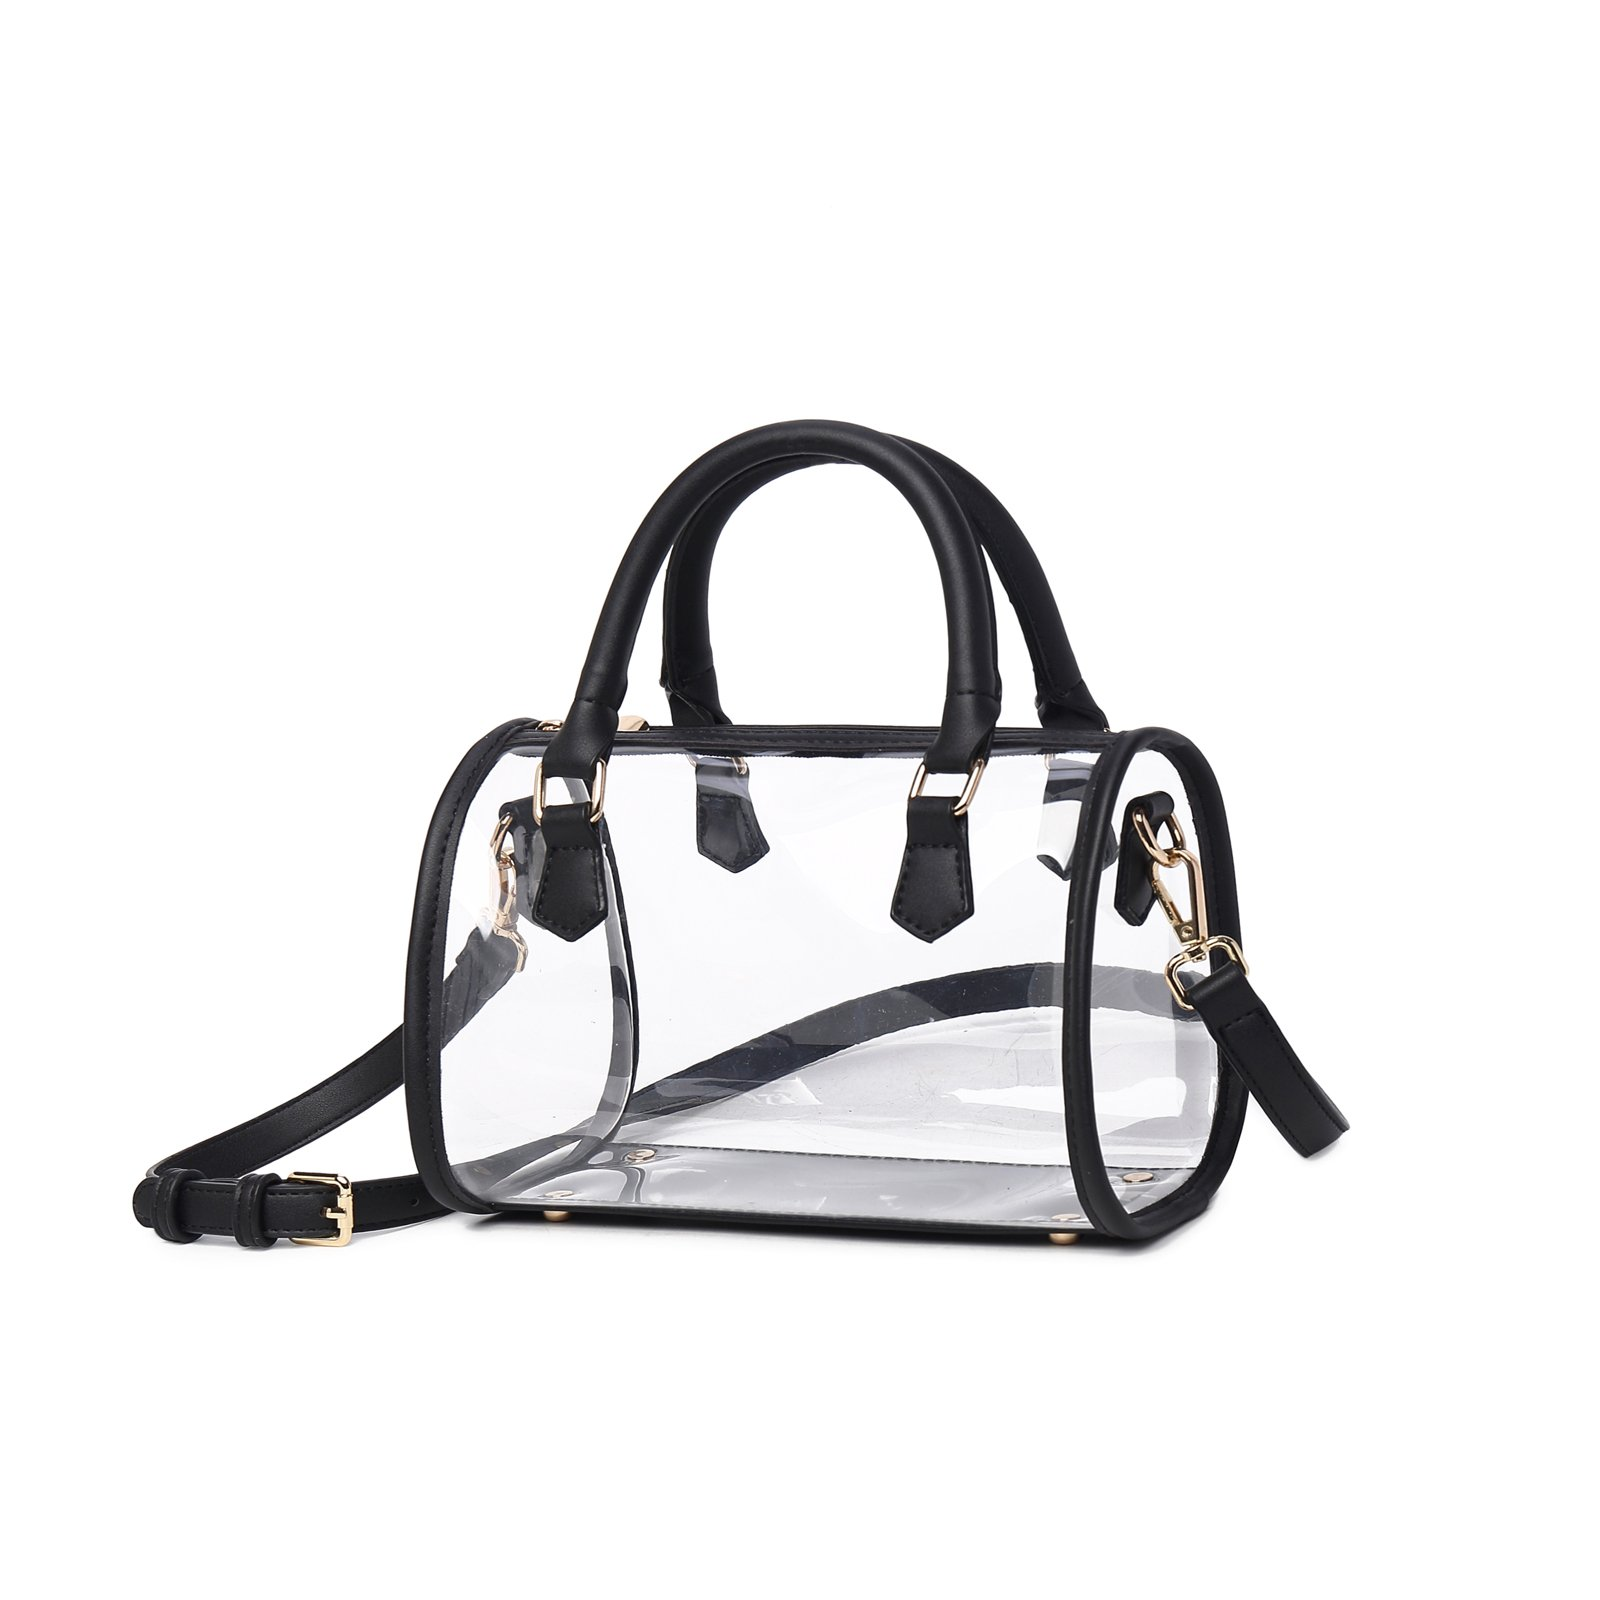 Lam Gallery Womens Clear Purse Transparent Handbags for Work Concert NFL Stadium Approved Clear Bags See Through PVC Plastic Bag Top Handle Satchel(Black 26CM)